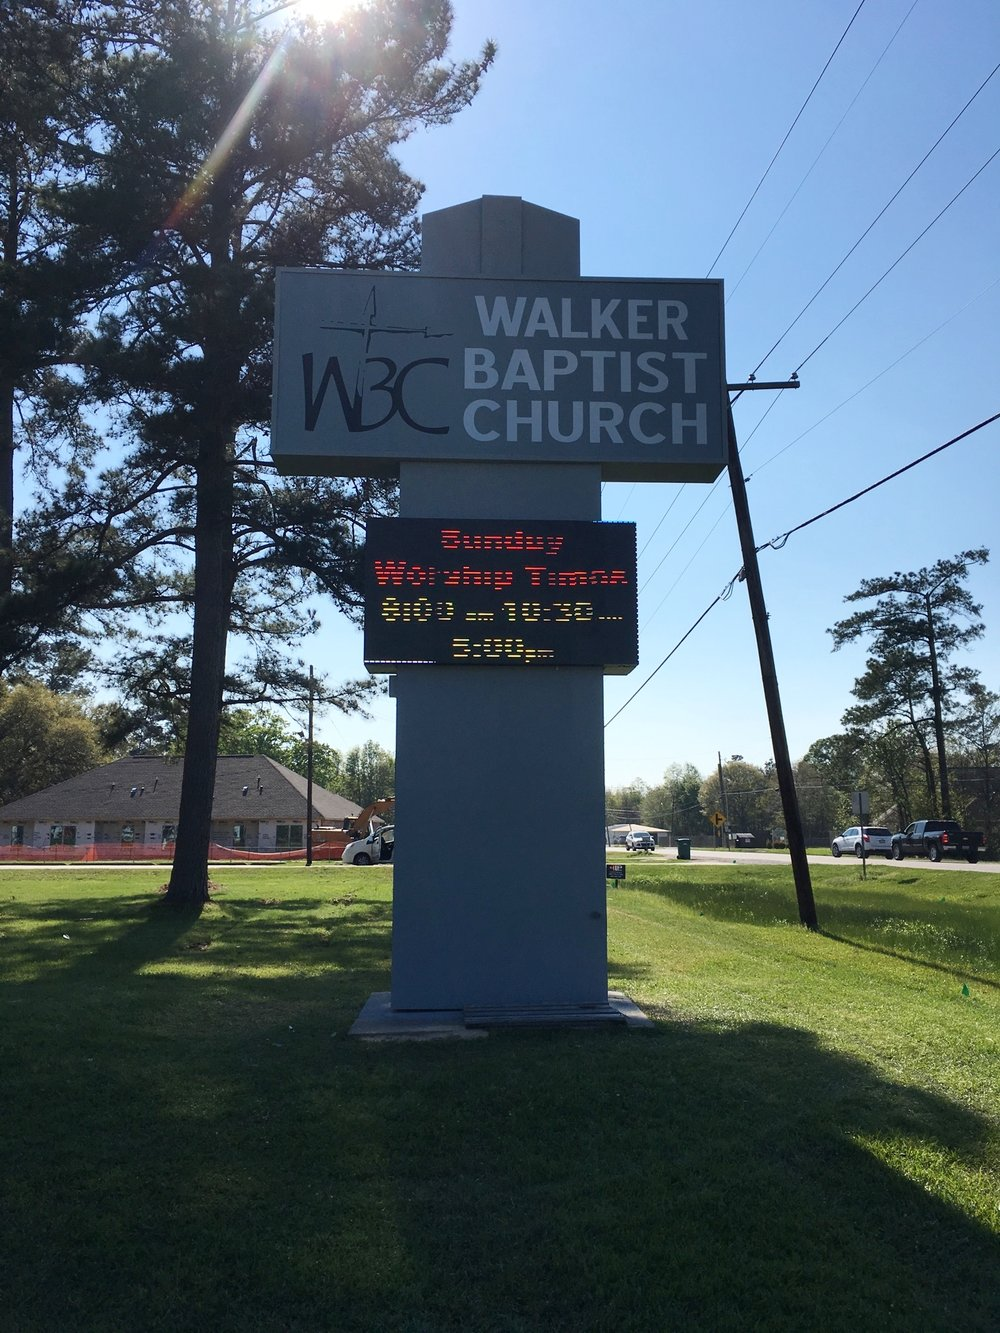 Walker Baptist Church.jpg